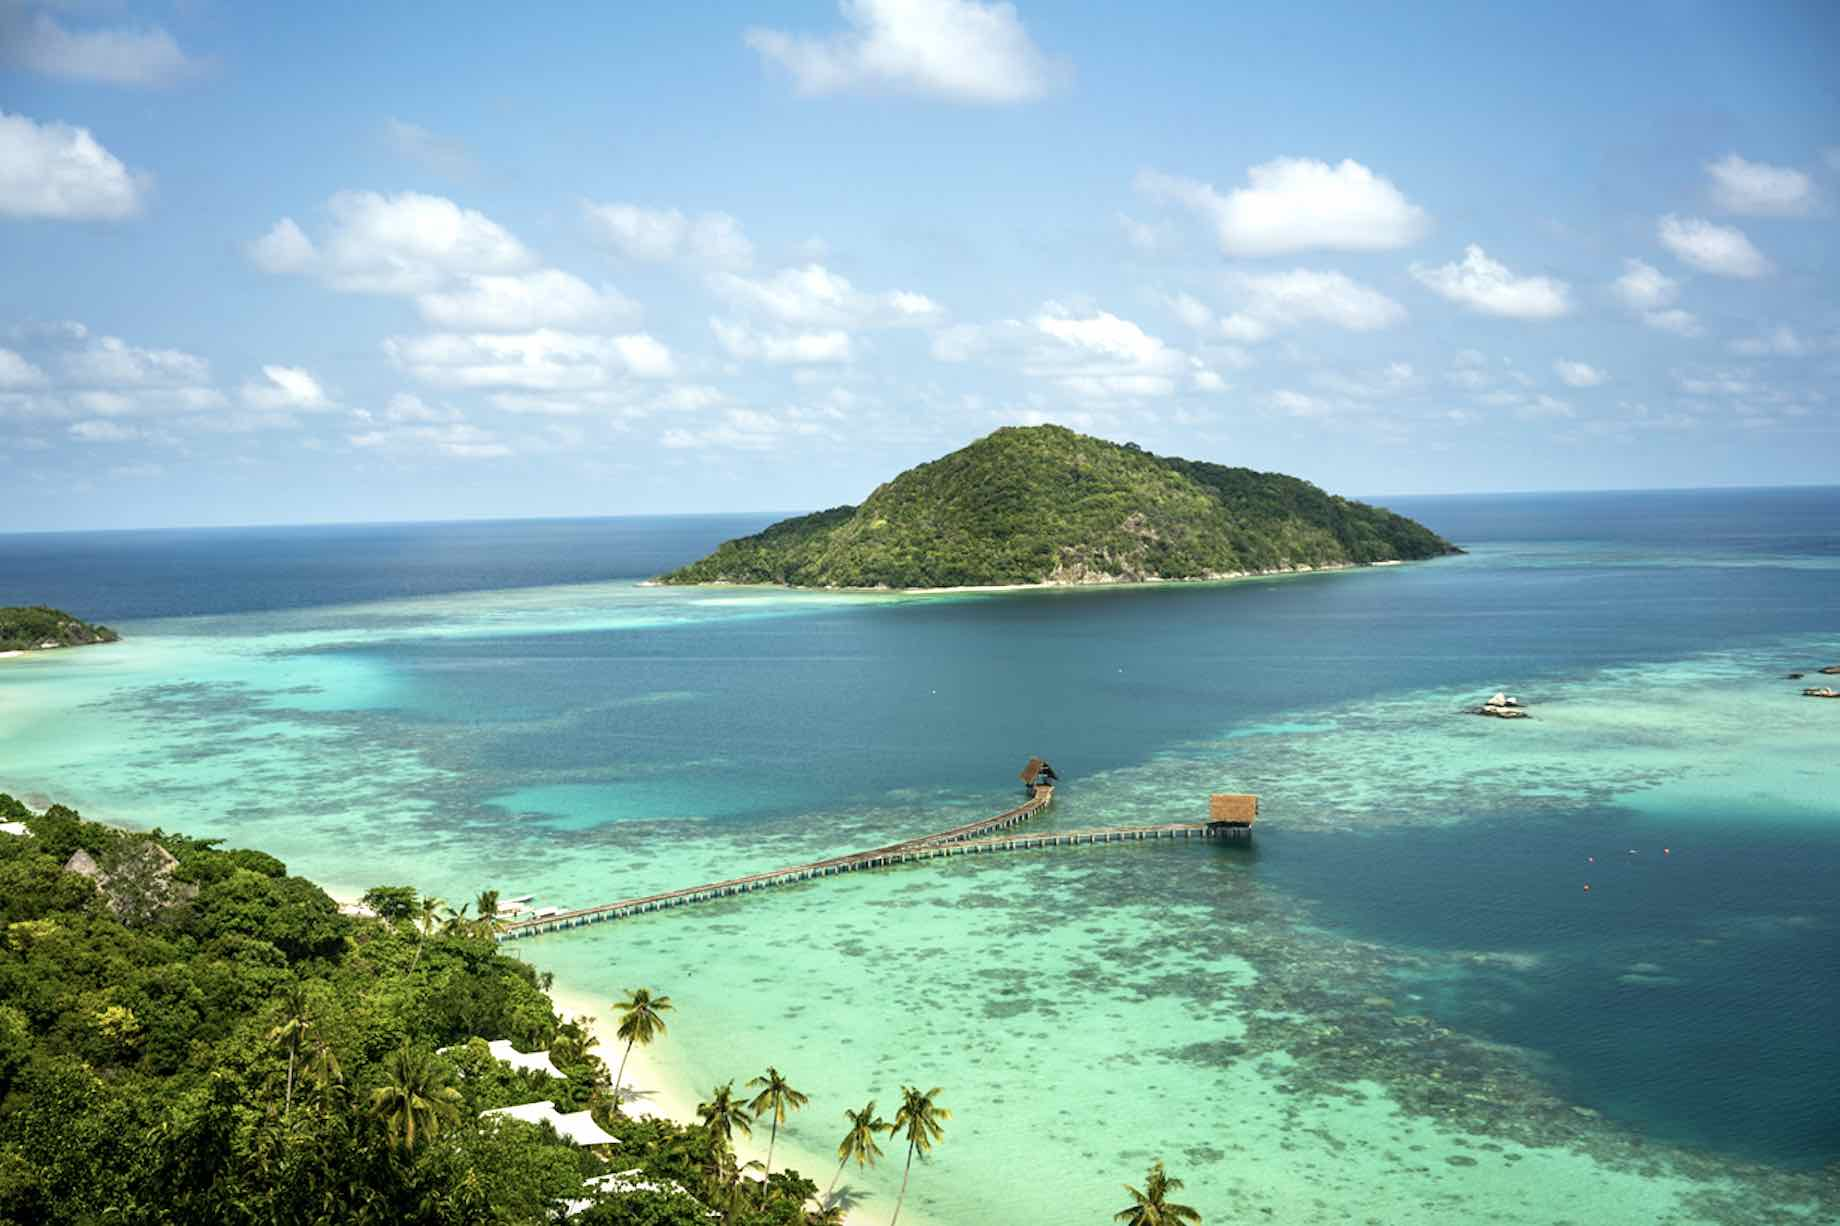 bawah-private-island-indonesia-tropical-paradise-aspirantsg